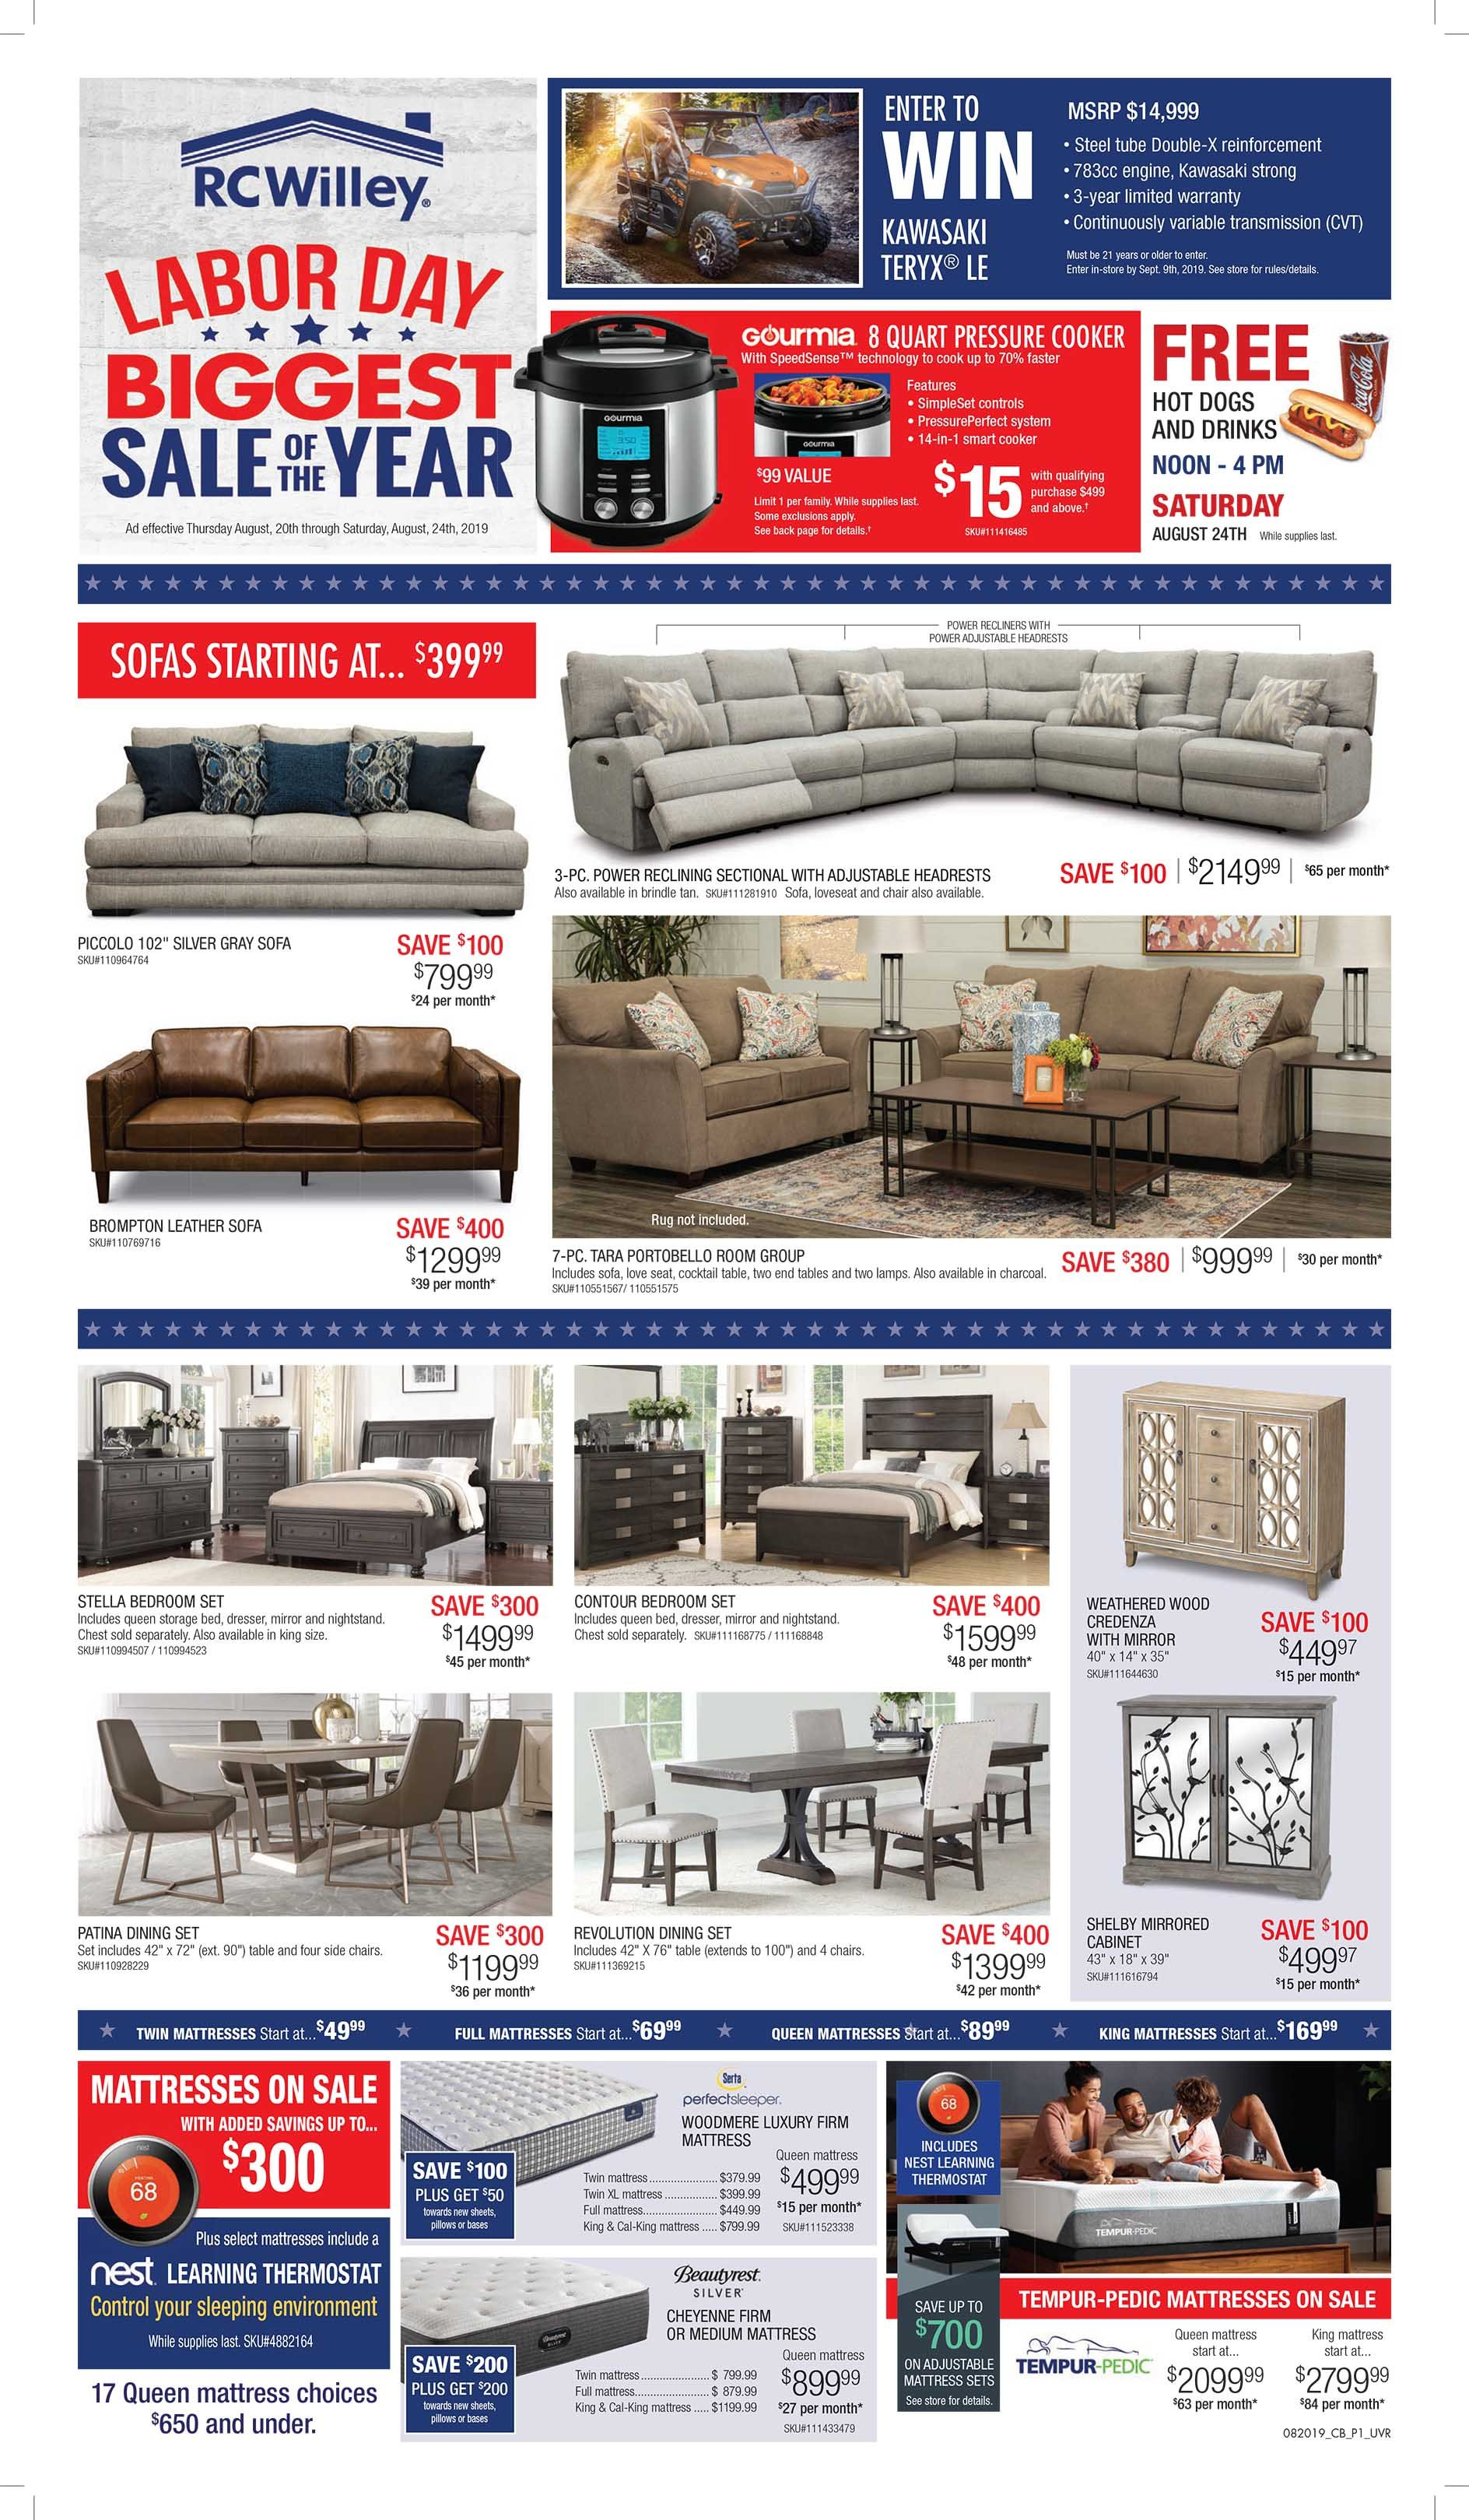 Labor Day Savings Going On Now At Rc Willey